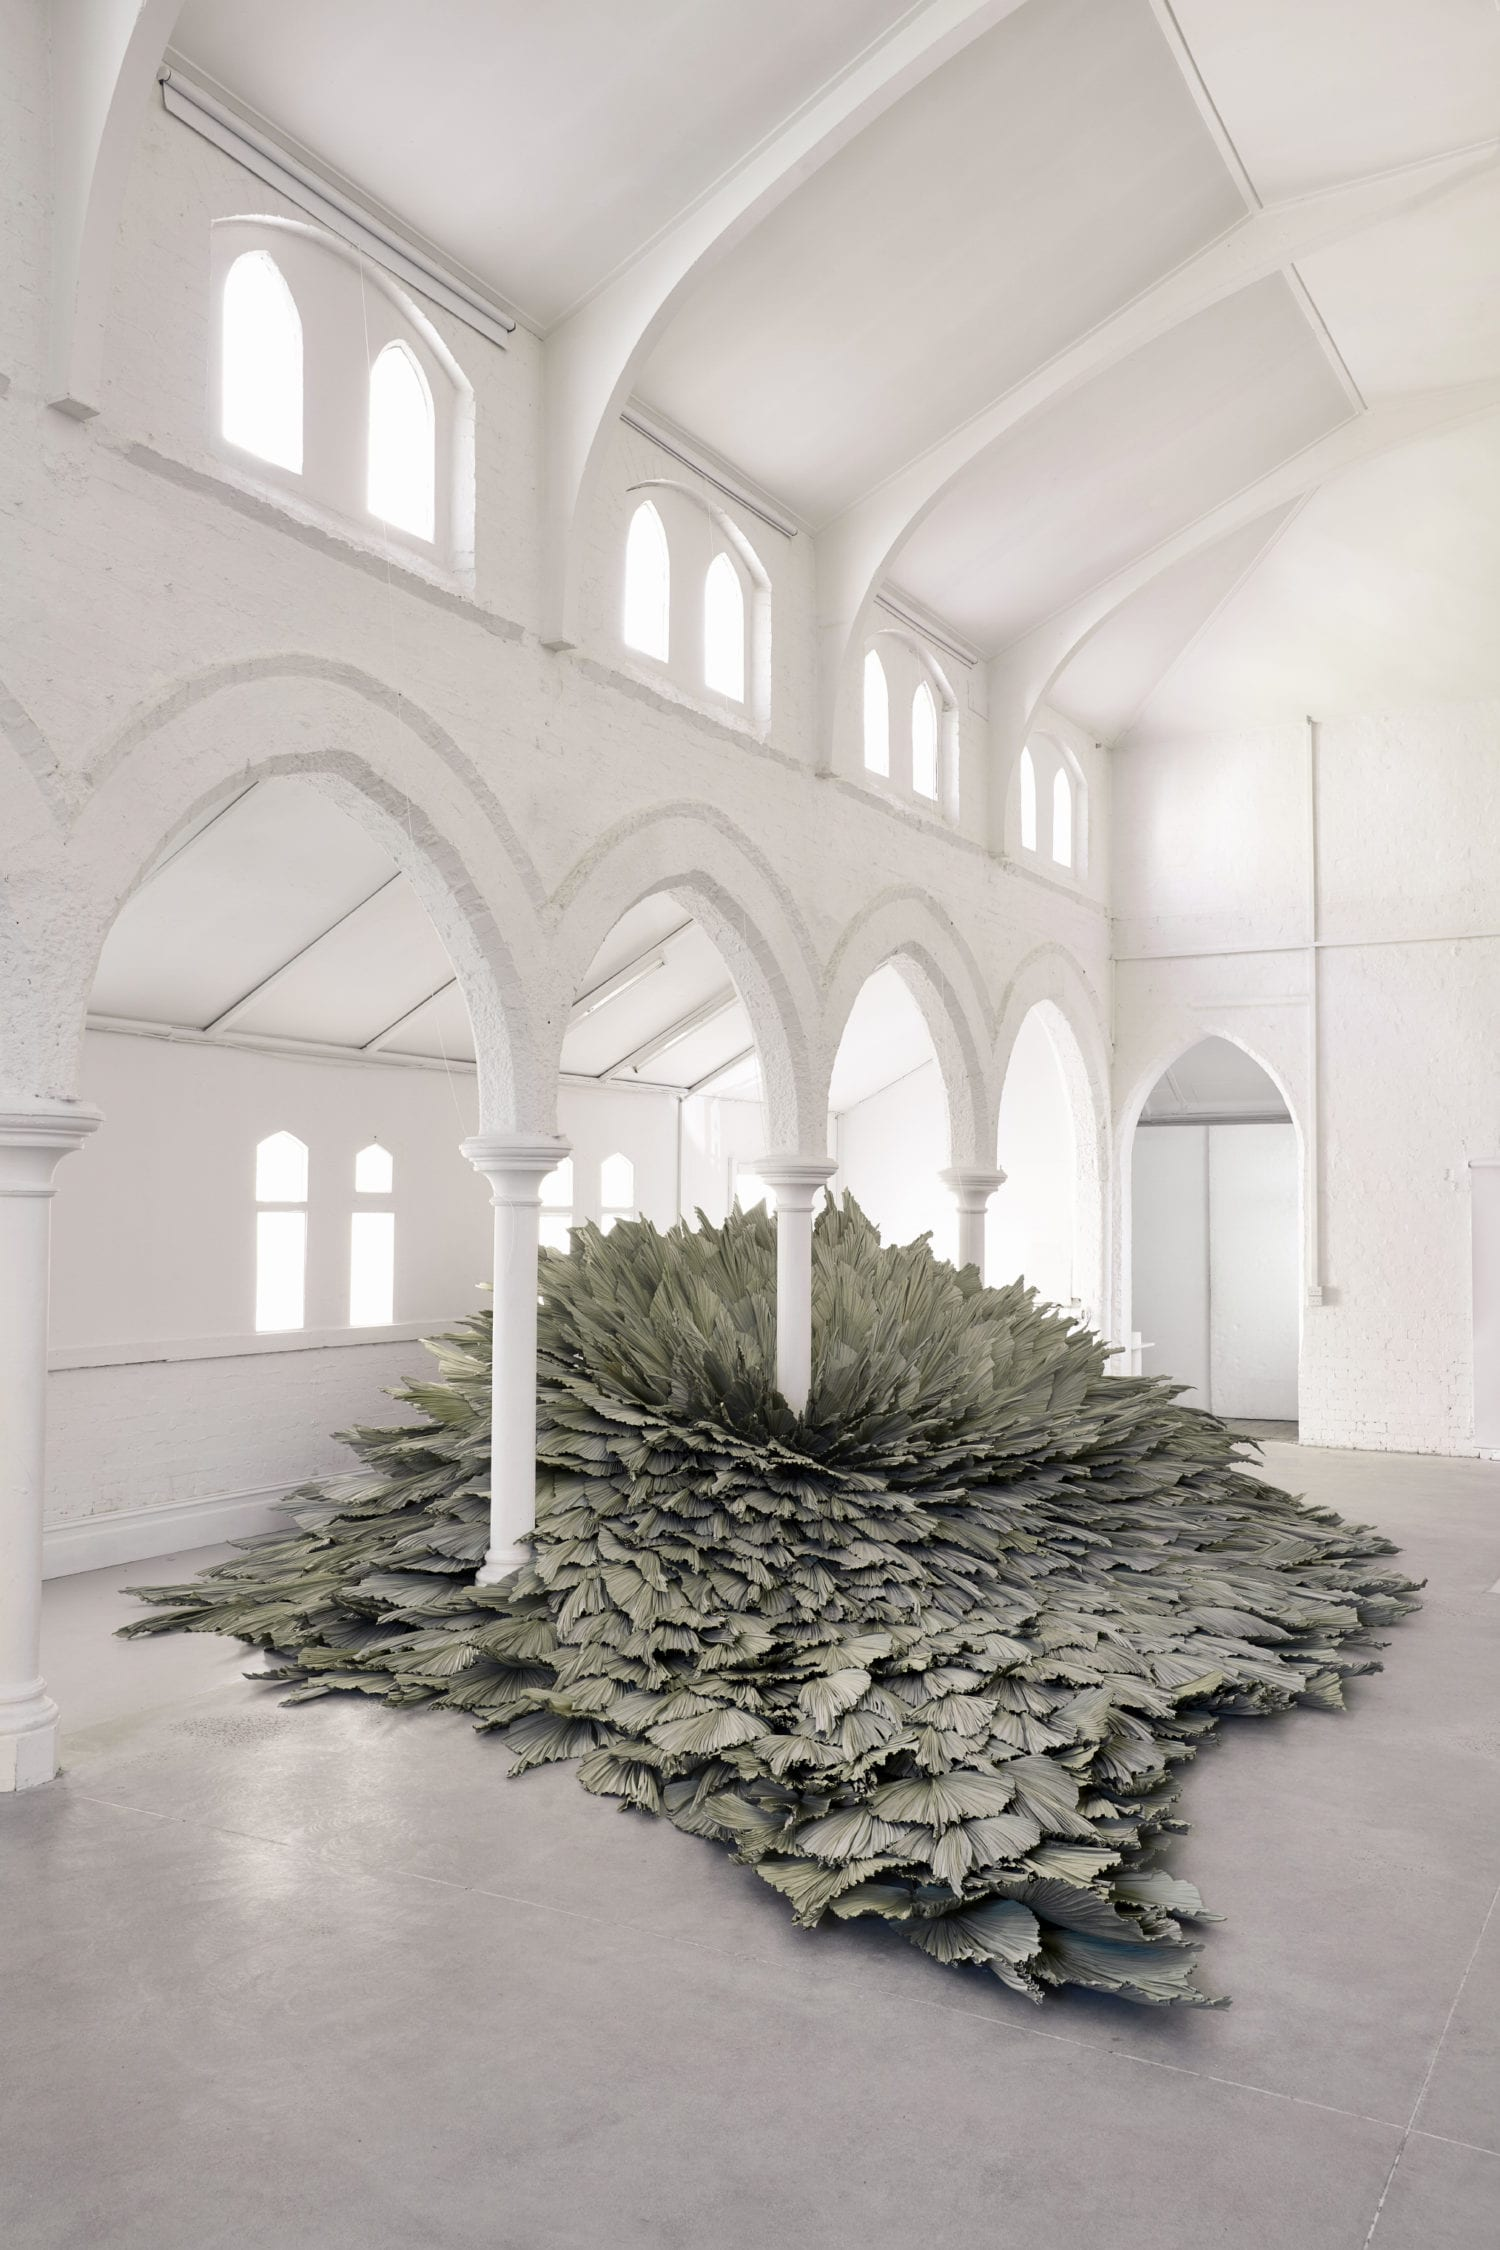 Proximity Botanical Installation by Wona Bae & Charlie Lawler of Loose Leaf | Yellowtrace